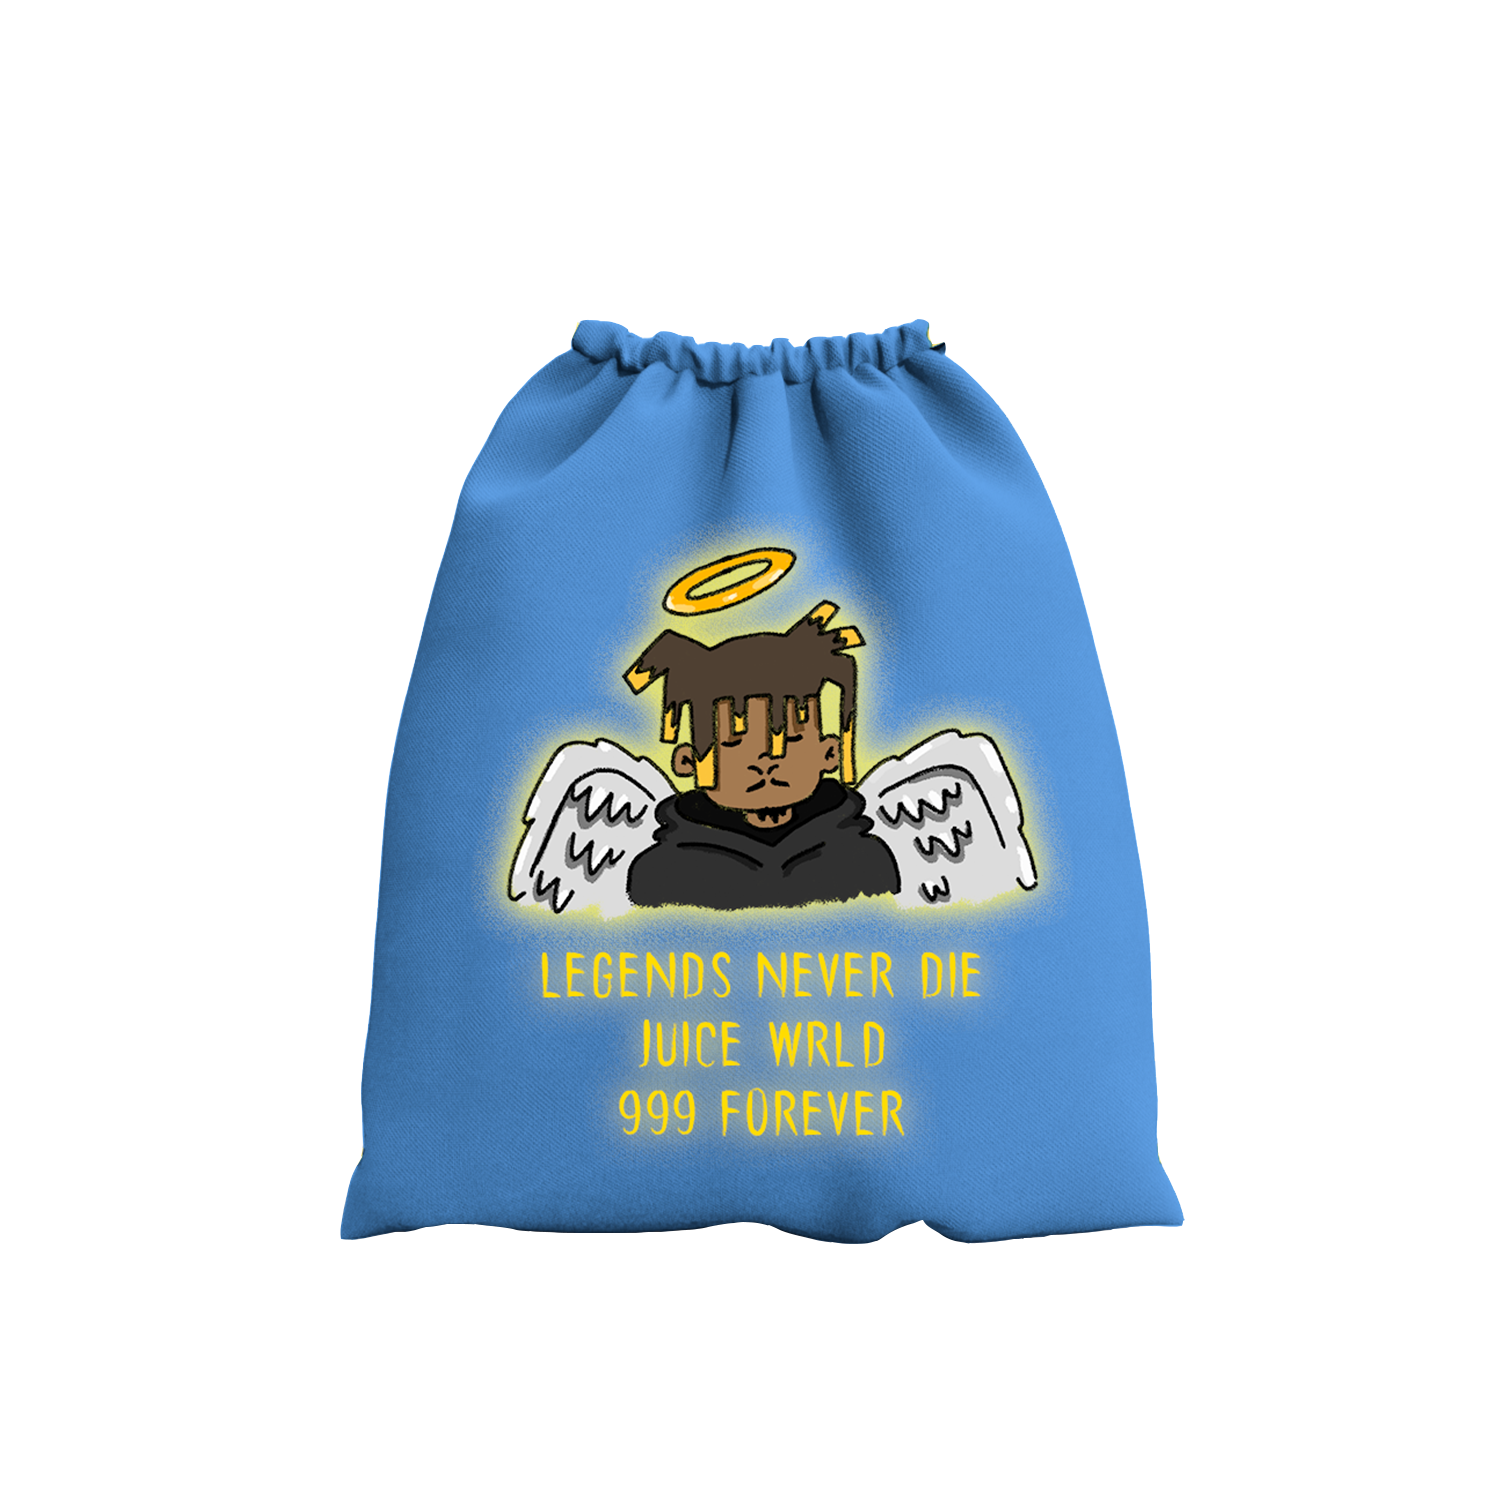 Legends Never Die Drawstring Bag + Digital Album - JuiceWrld